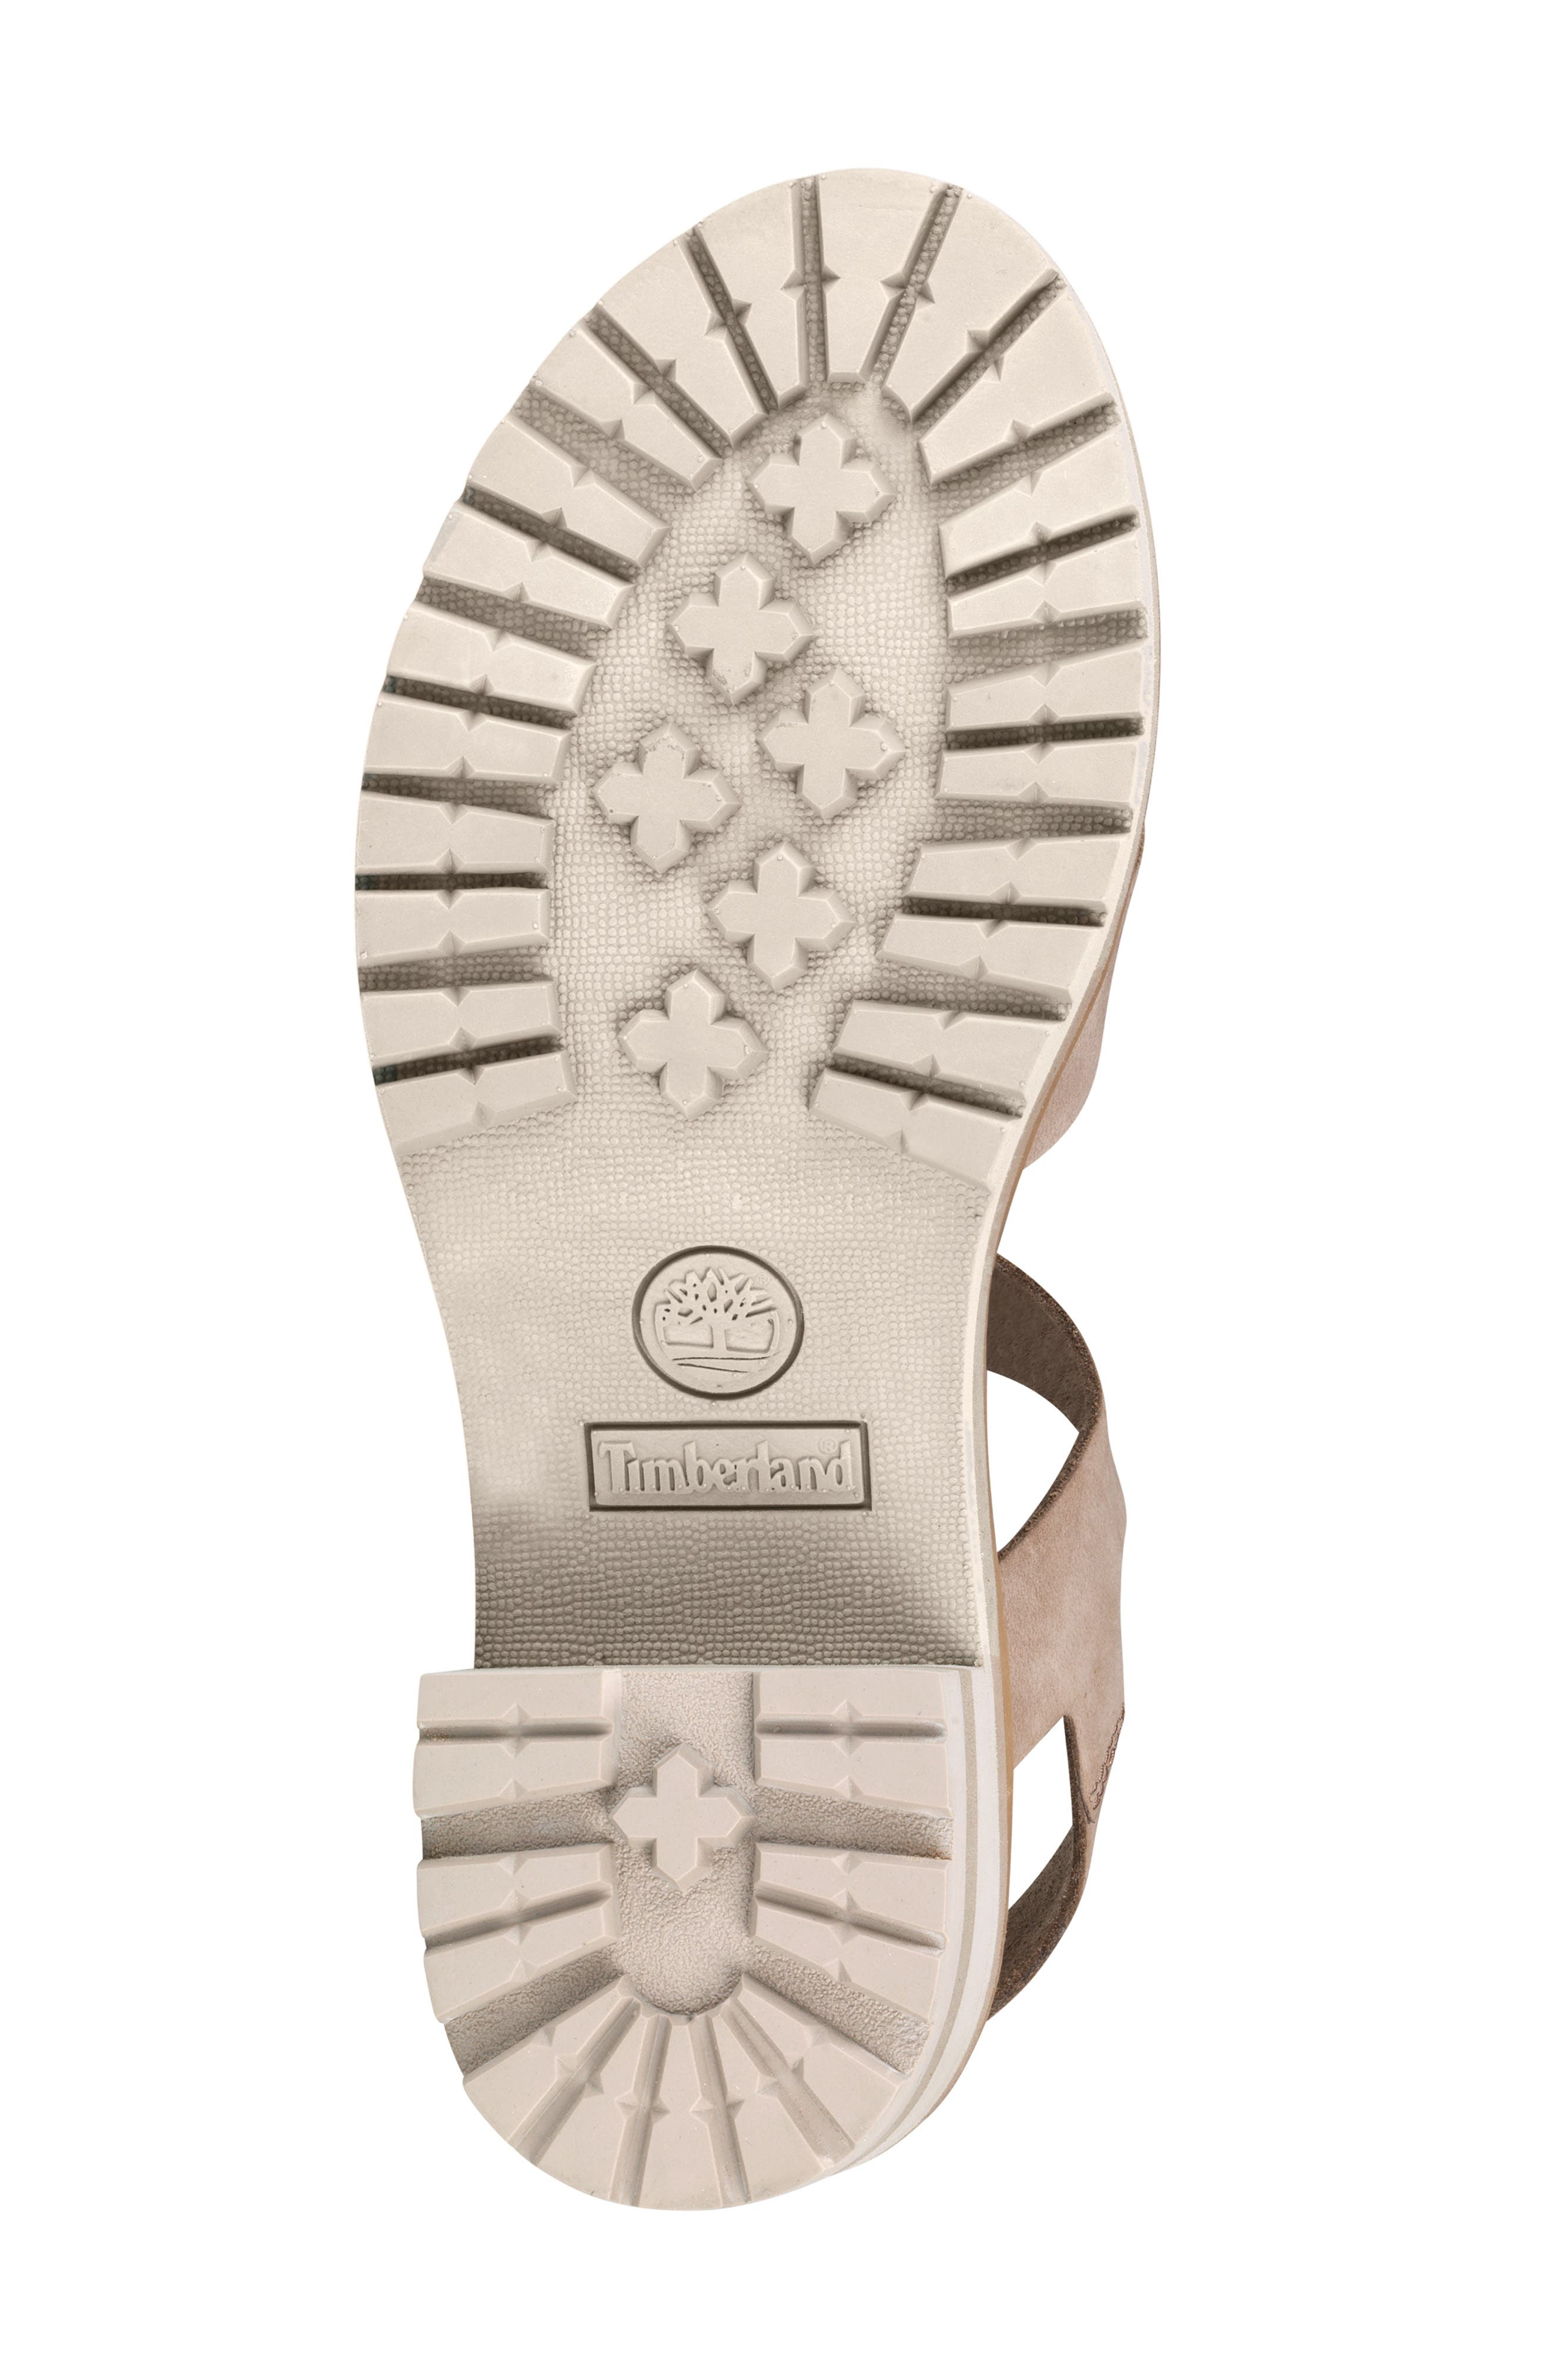 TIMBERLAND,                             Violet March Crisscross Sandal,                             Alternate thumbnail 5, color,                             TAUPE NUBUCK LEATHER